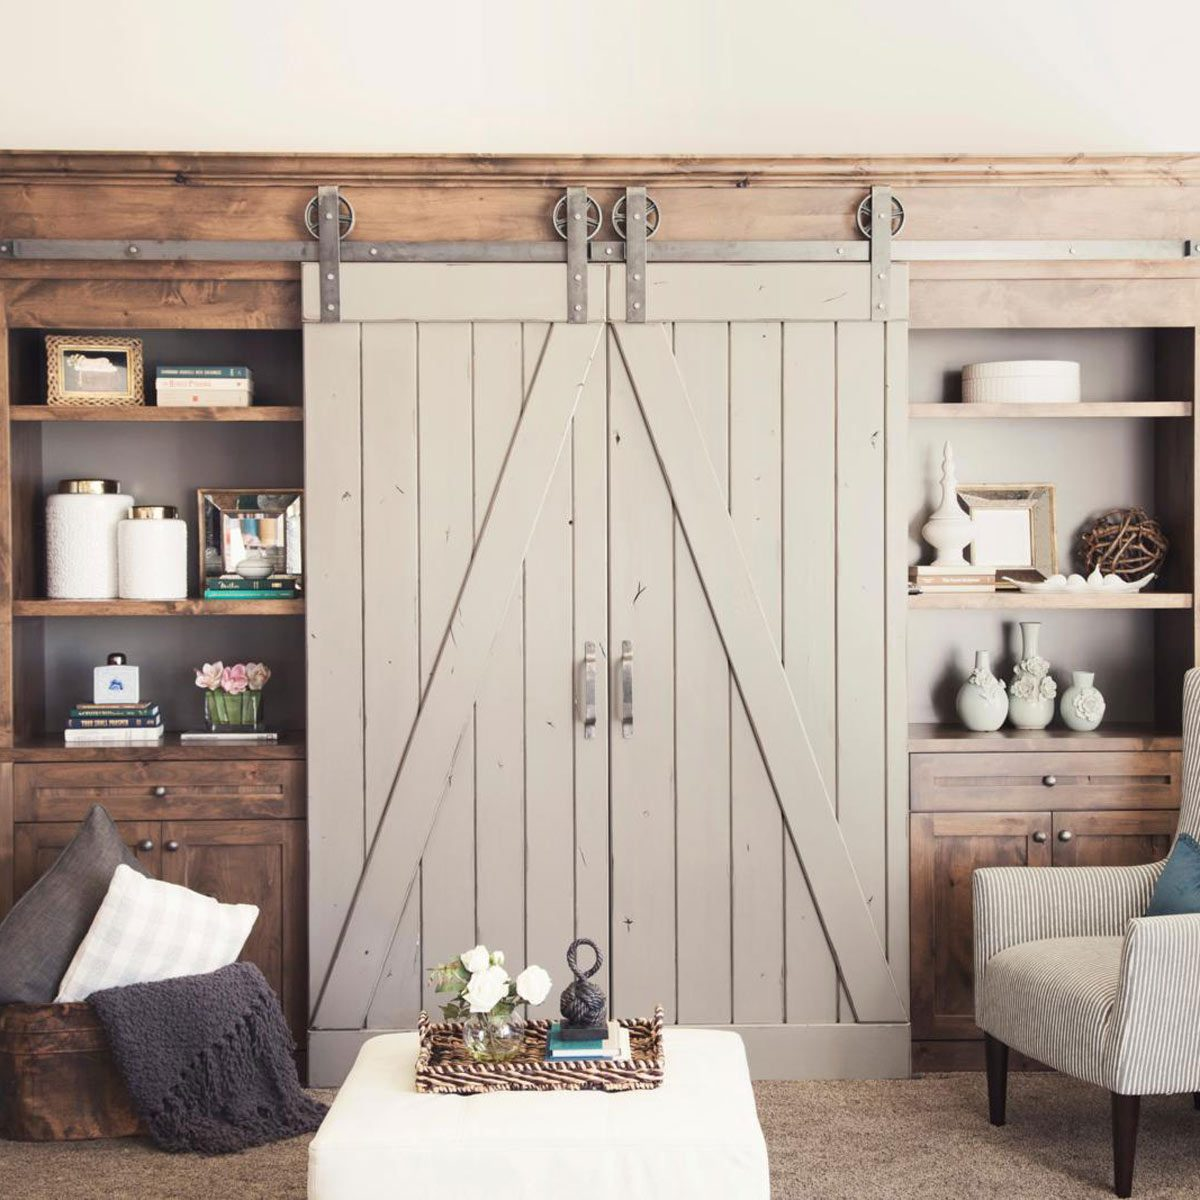 Posh Frosted Glass Windows Barn Doors Barn Doors How To Build A Rustic Barn Door Family Handyman Barn Doors houzz-03 Double Barn Doors